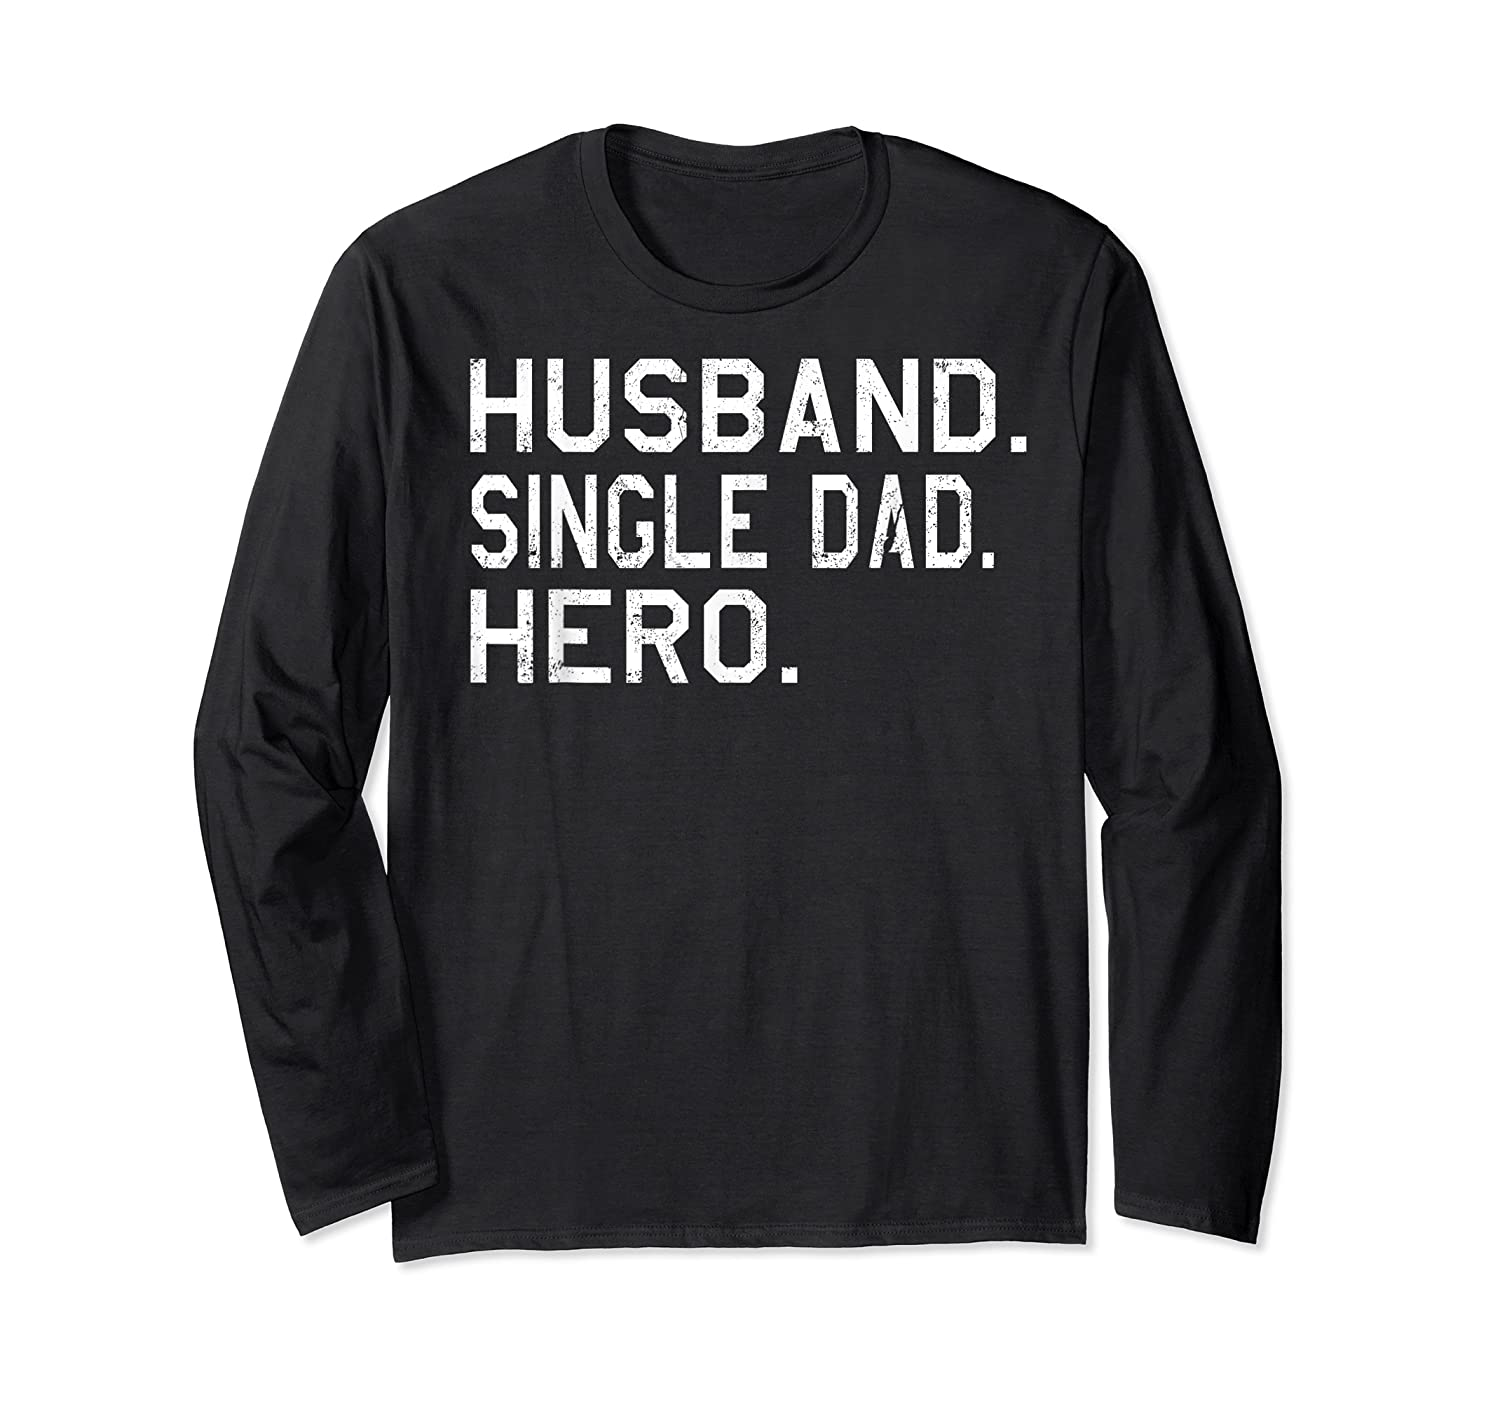 Fathers Day Gift For Husband Single Dad Hero Funny Shirt Long Sleeve T-shirt